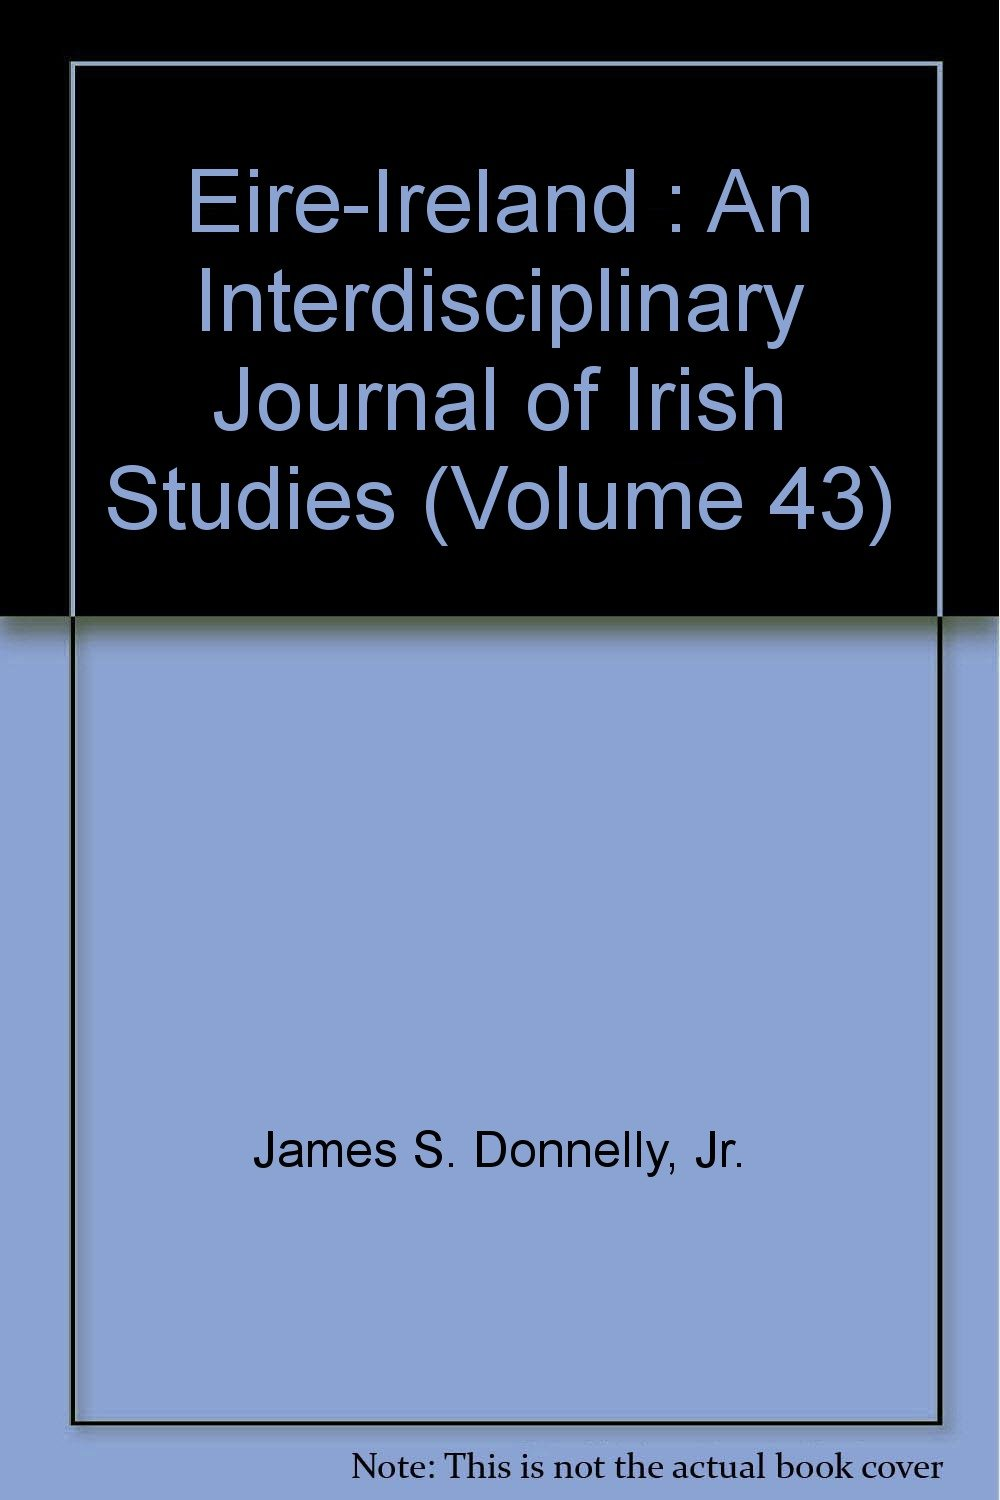 Eire Ireland An Interdisciplinary Journal Of Irish Studies Volume 43 James S Donnelly Jr Vera Kreilkamp Amazon Com Books